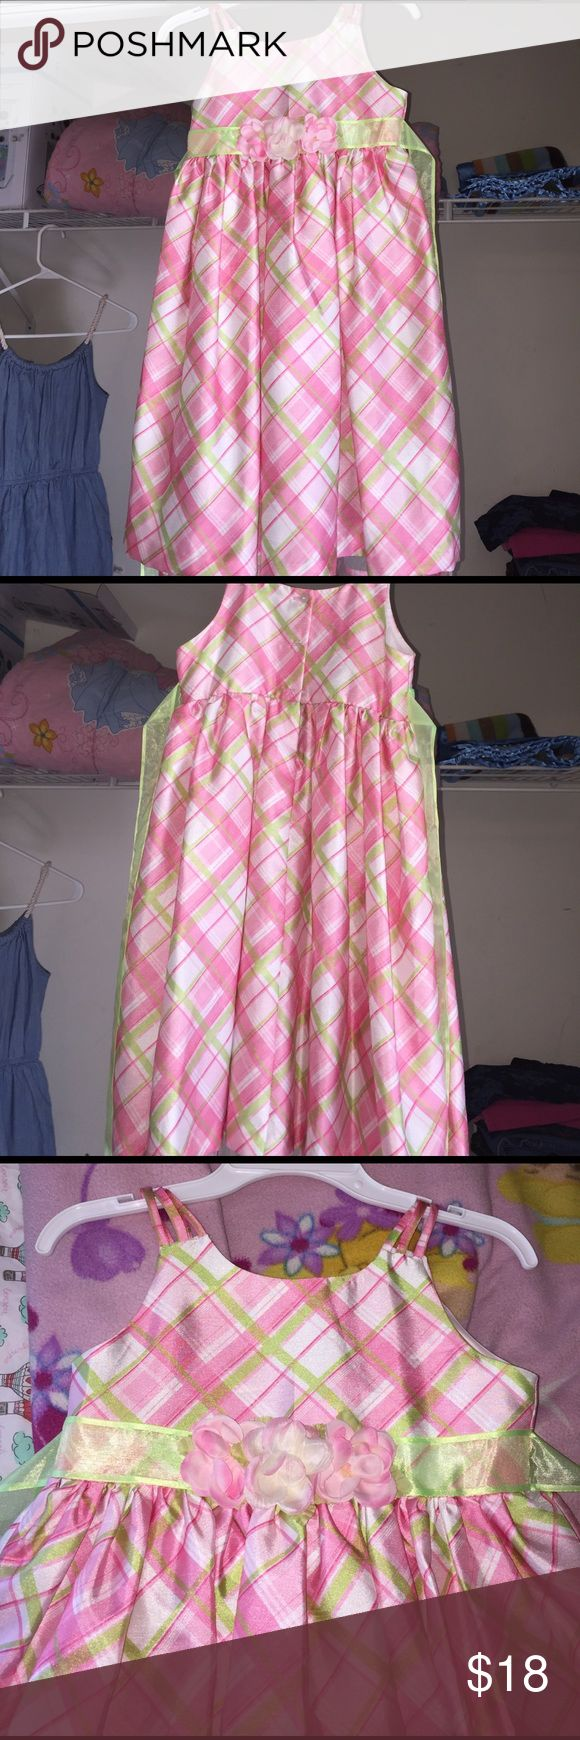 Dress for a toddler girl Multi color dress for little girl. Worn once. Great condition Dresses Formal